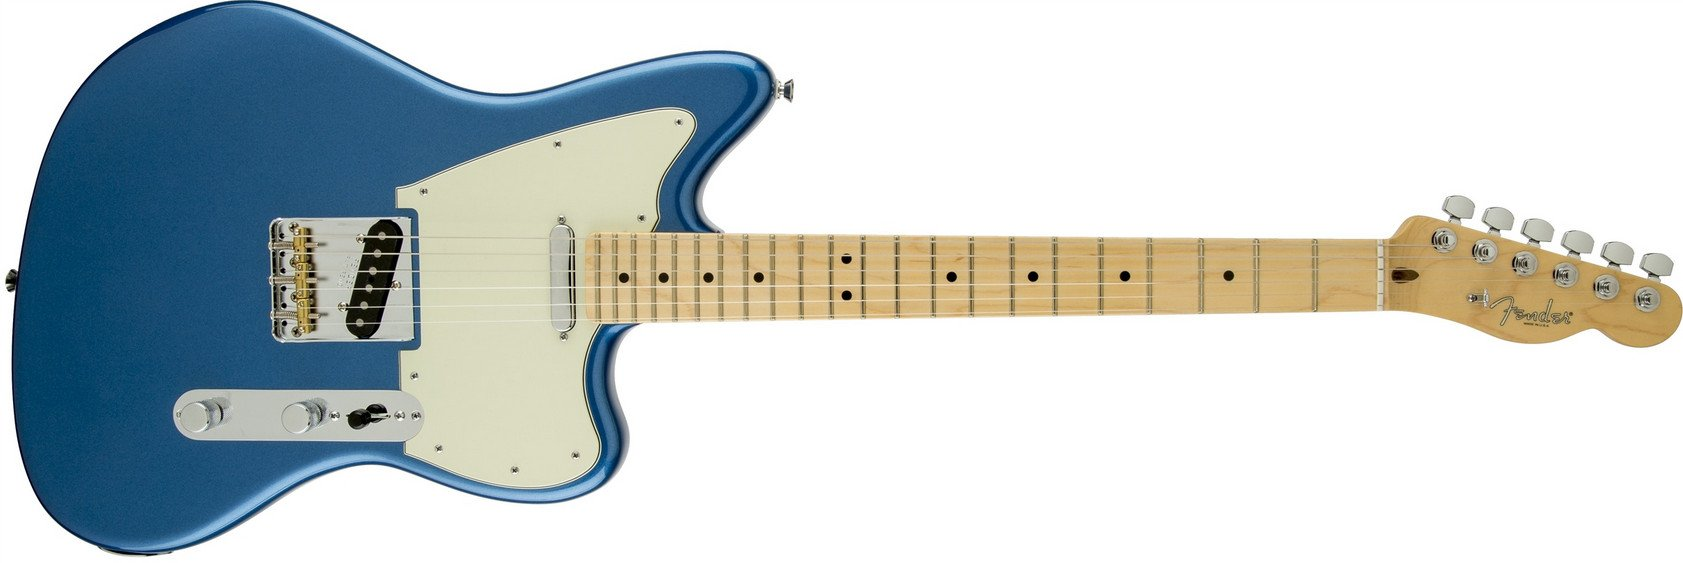 Limited Edition American Standard Offset Telecaster Guitar